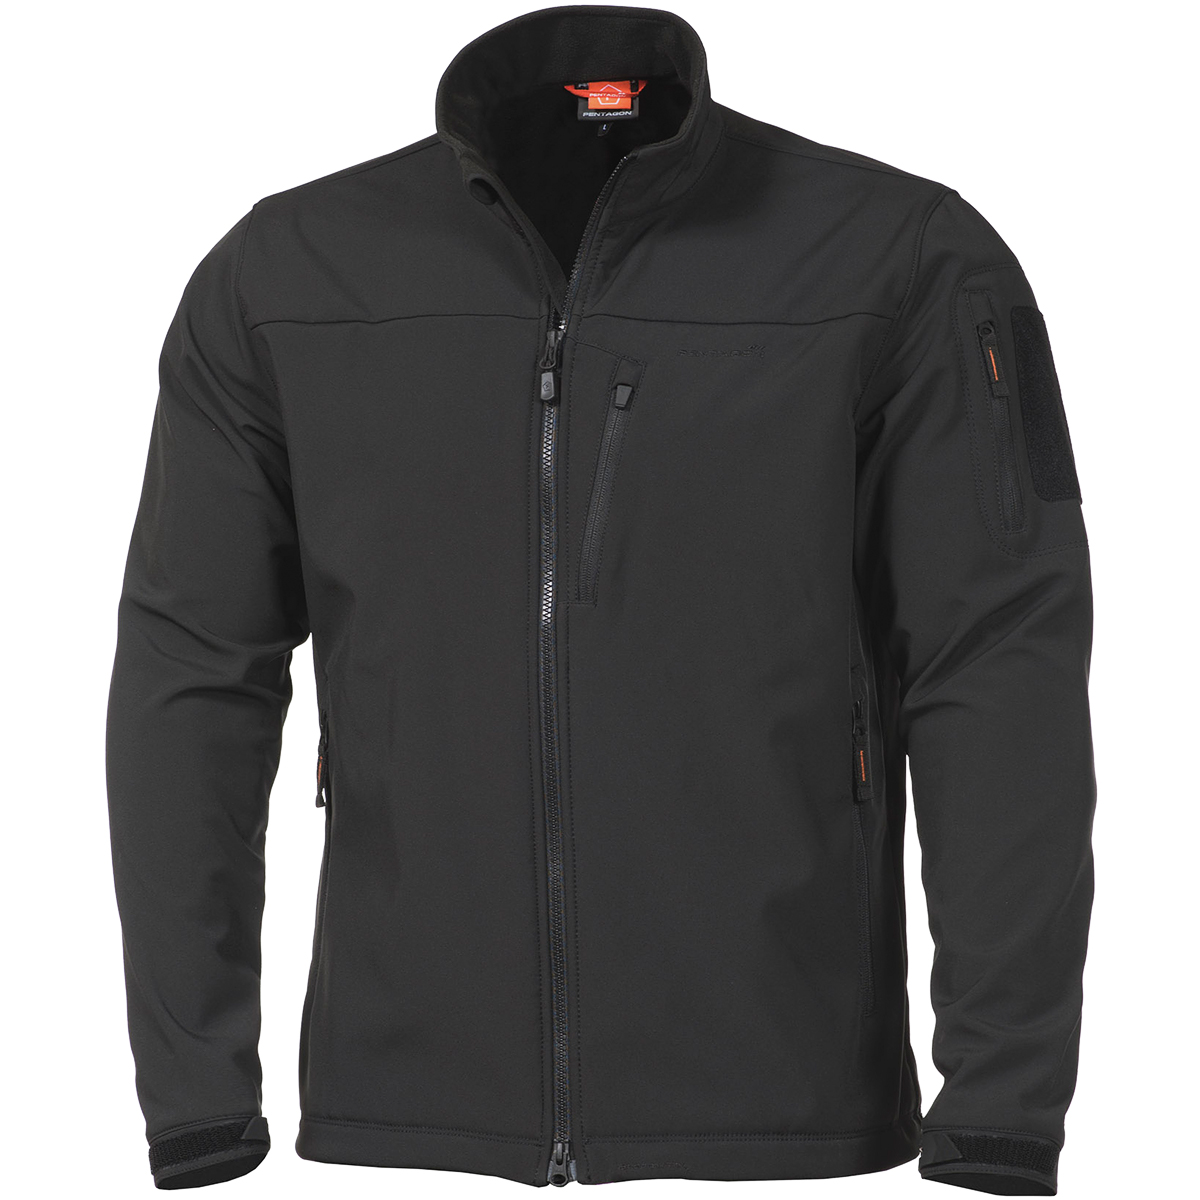 Pentagon Reiner 2 0 Softshell Jacket Black Soft Shell